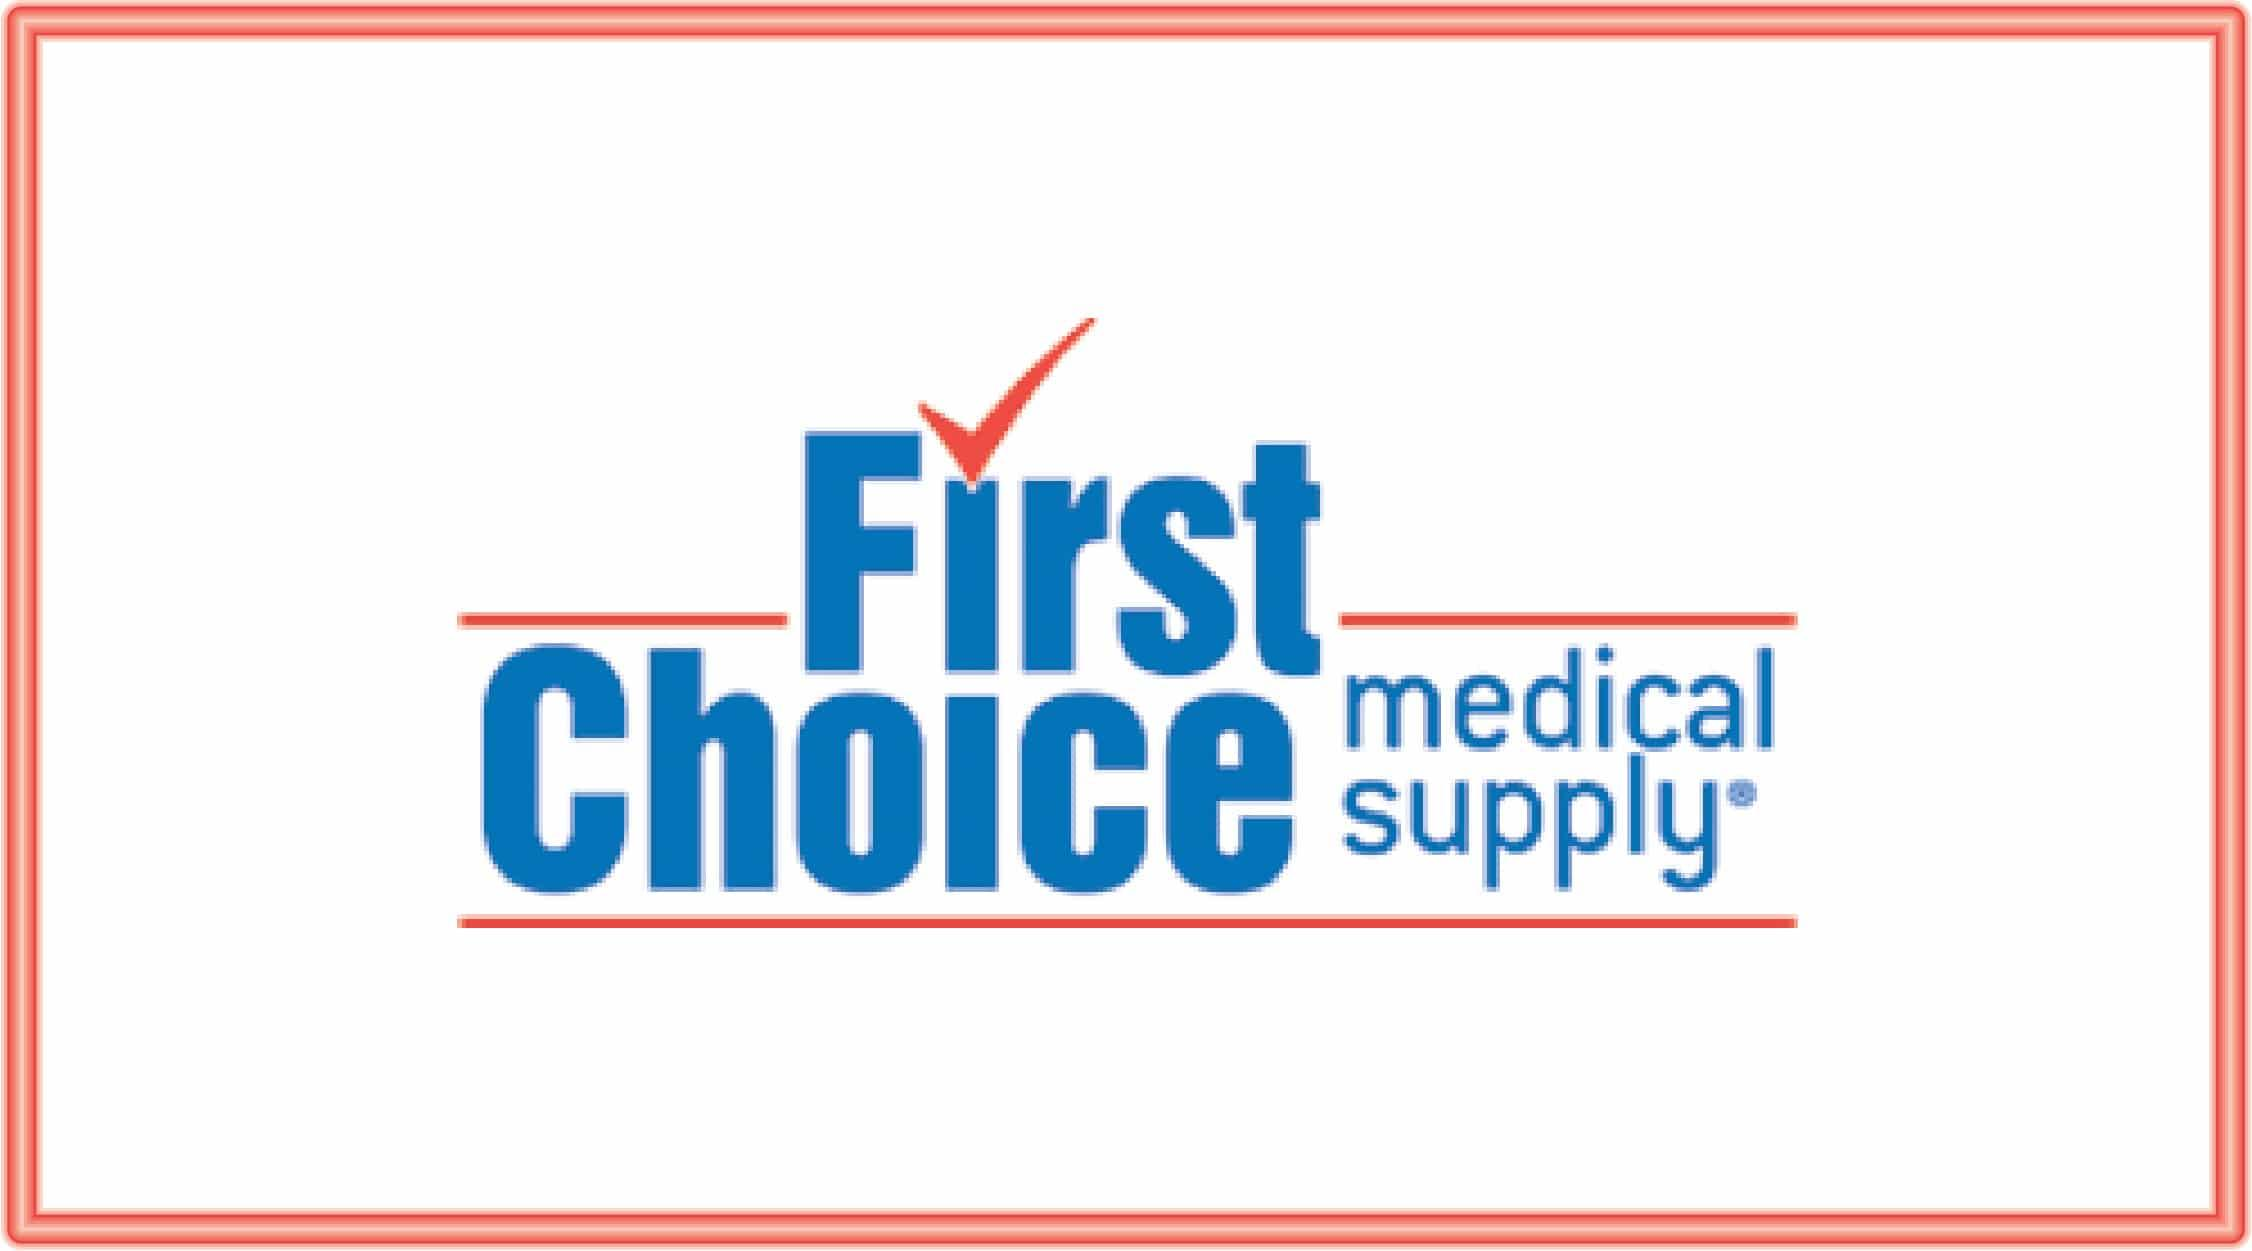 First Choice Medical Supply